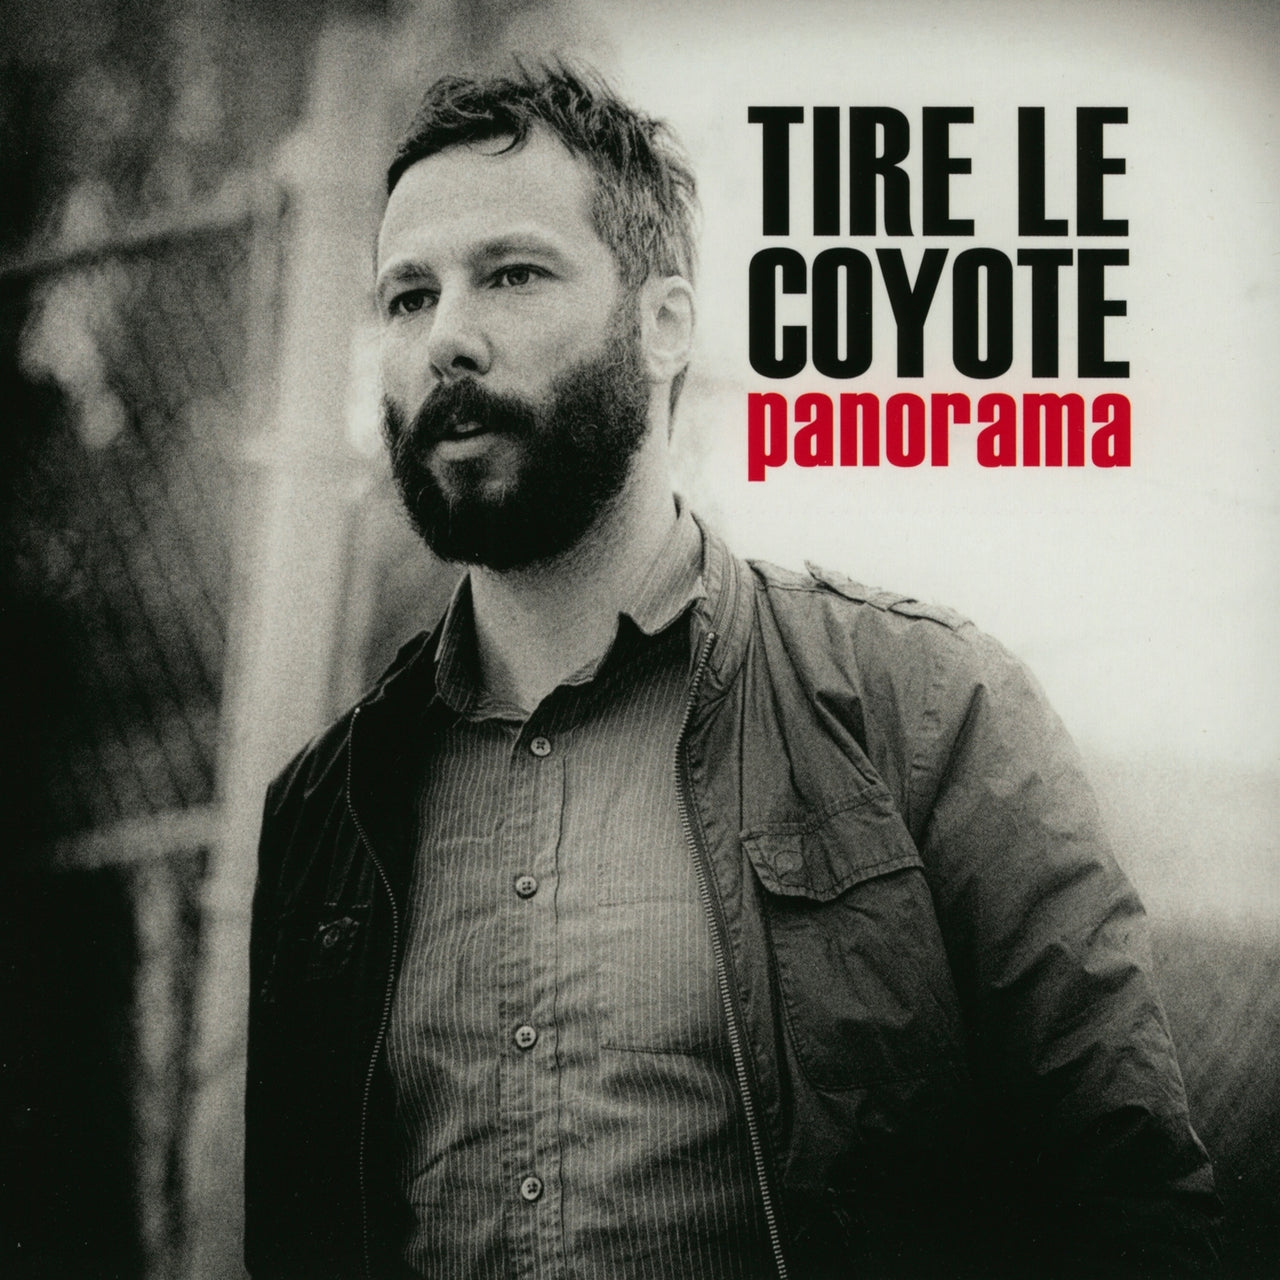 Tire Le Coyote : Panorama  CD